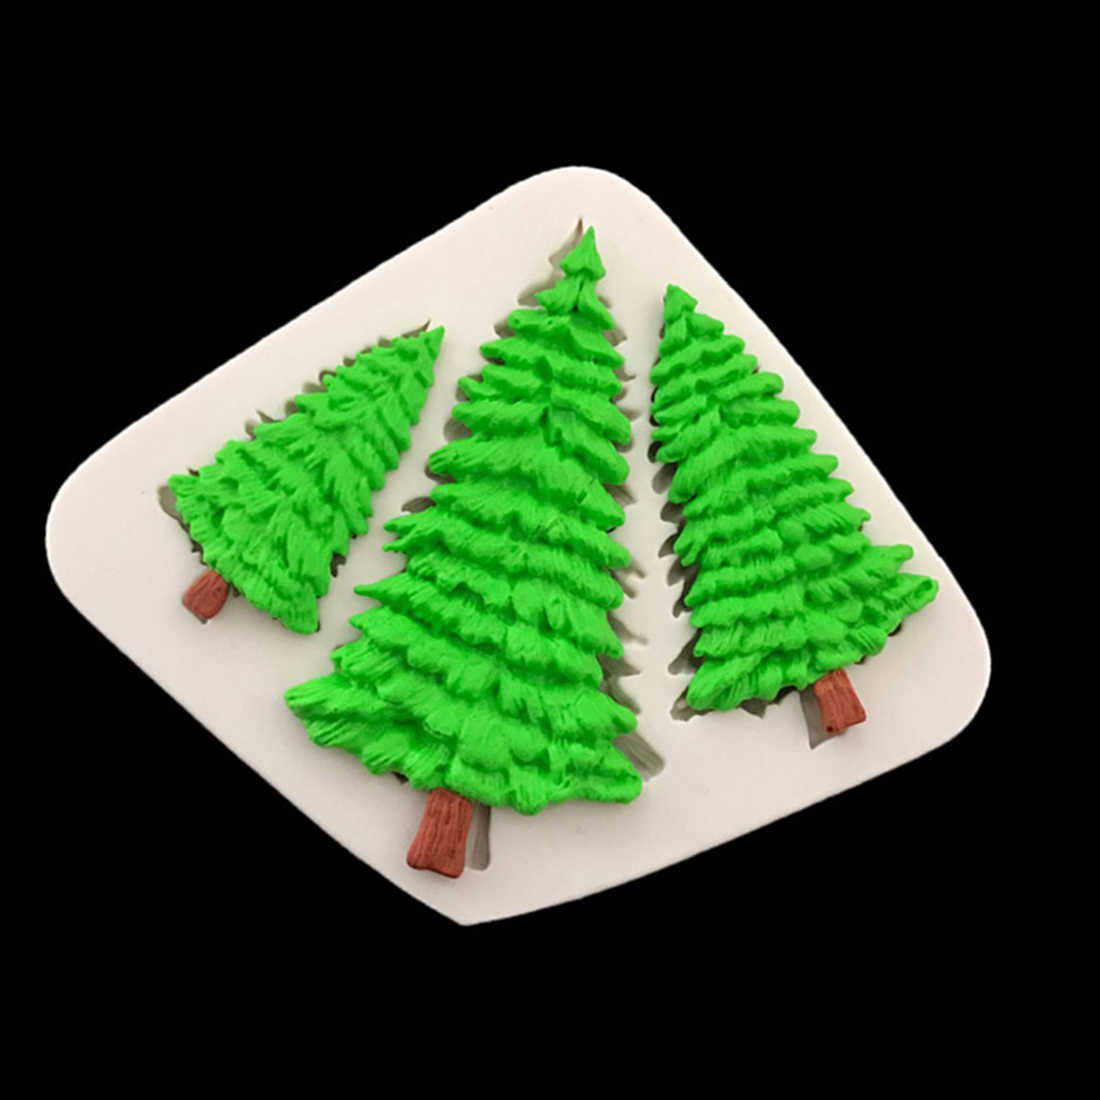 Fashion 3D Cookings for Cake Silicone 3 Holes Christmas Tree Shape Fondant Bread Biscuit Chocolate Mold Stencil